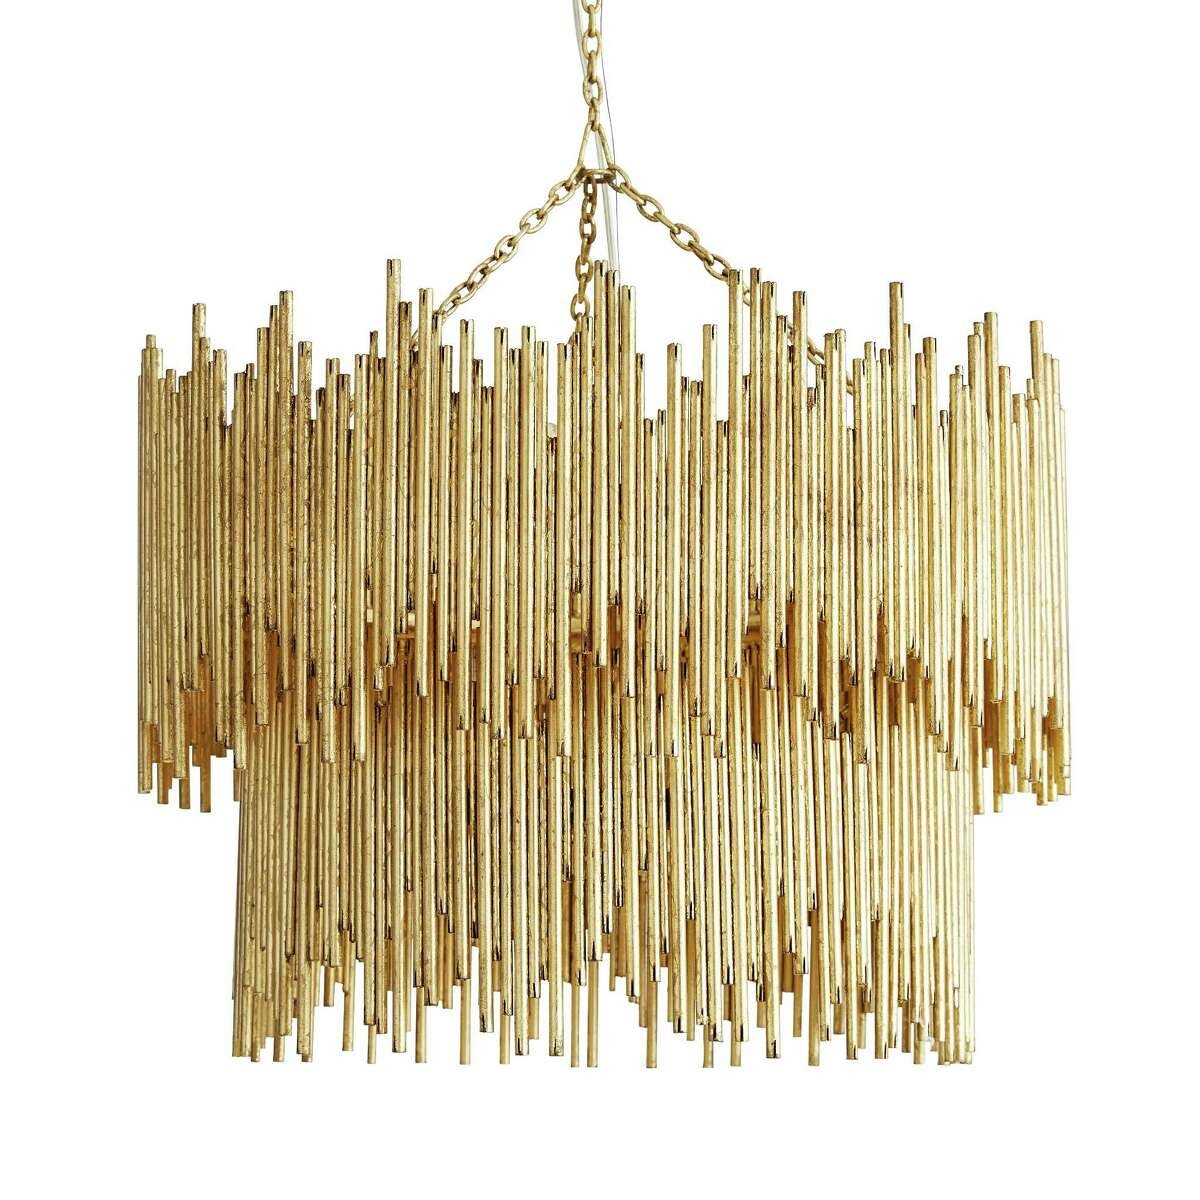 Crowning achievement:Gold leaf adds shimmer to the iron rods welded together to form this two-tier Prescott chandelier by Arteriors. The eight-light fixture comes in single-tier, sconce or oval-mirror versions in gold leaf or silver leaf. $4,200; Arteriors vendors and arteriorshome.com